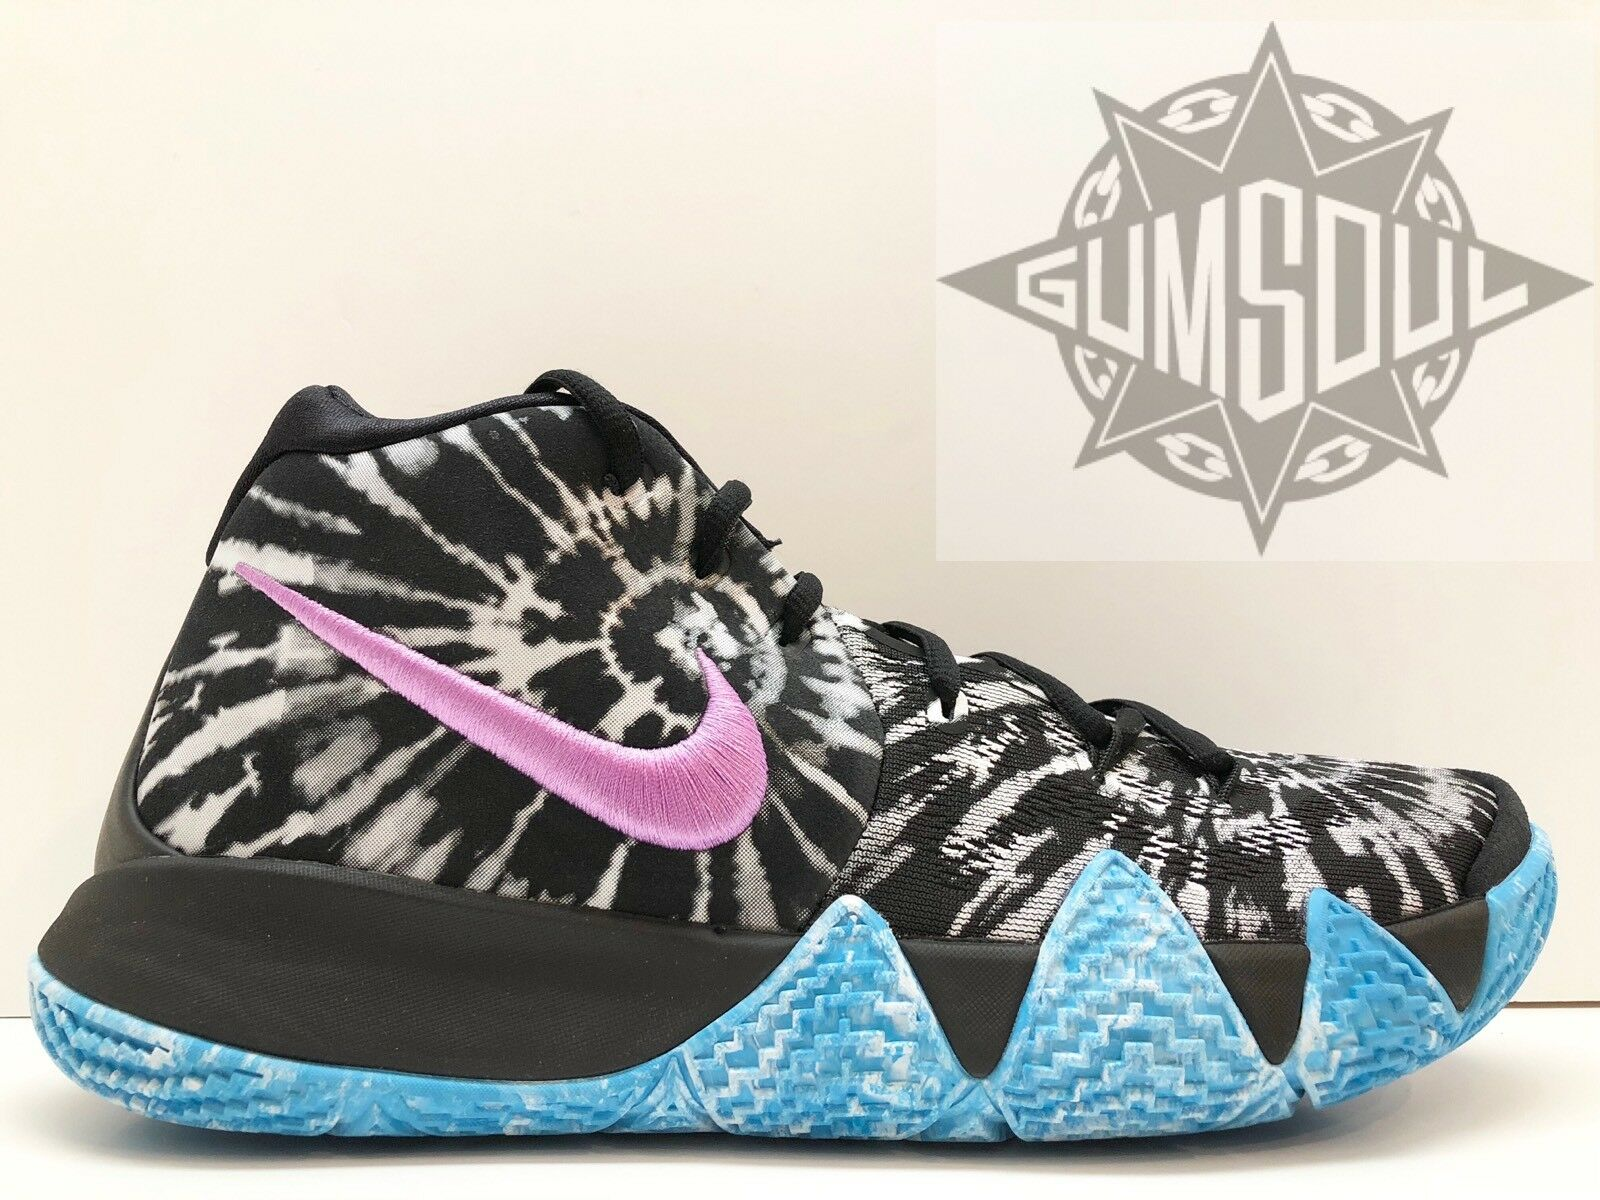 NIKE KYRIE 4 AS ALL BLACK STAR GAME TIE DYE BLACK ALL  WHITE PURPLE BLUE AQ8623 001 sz 10 213447